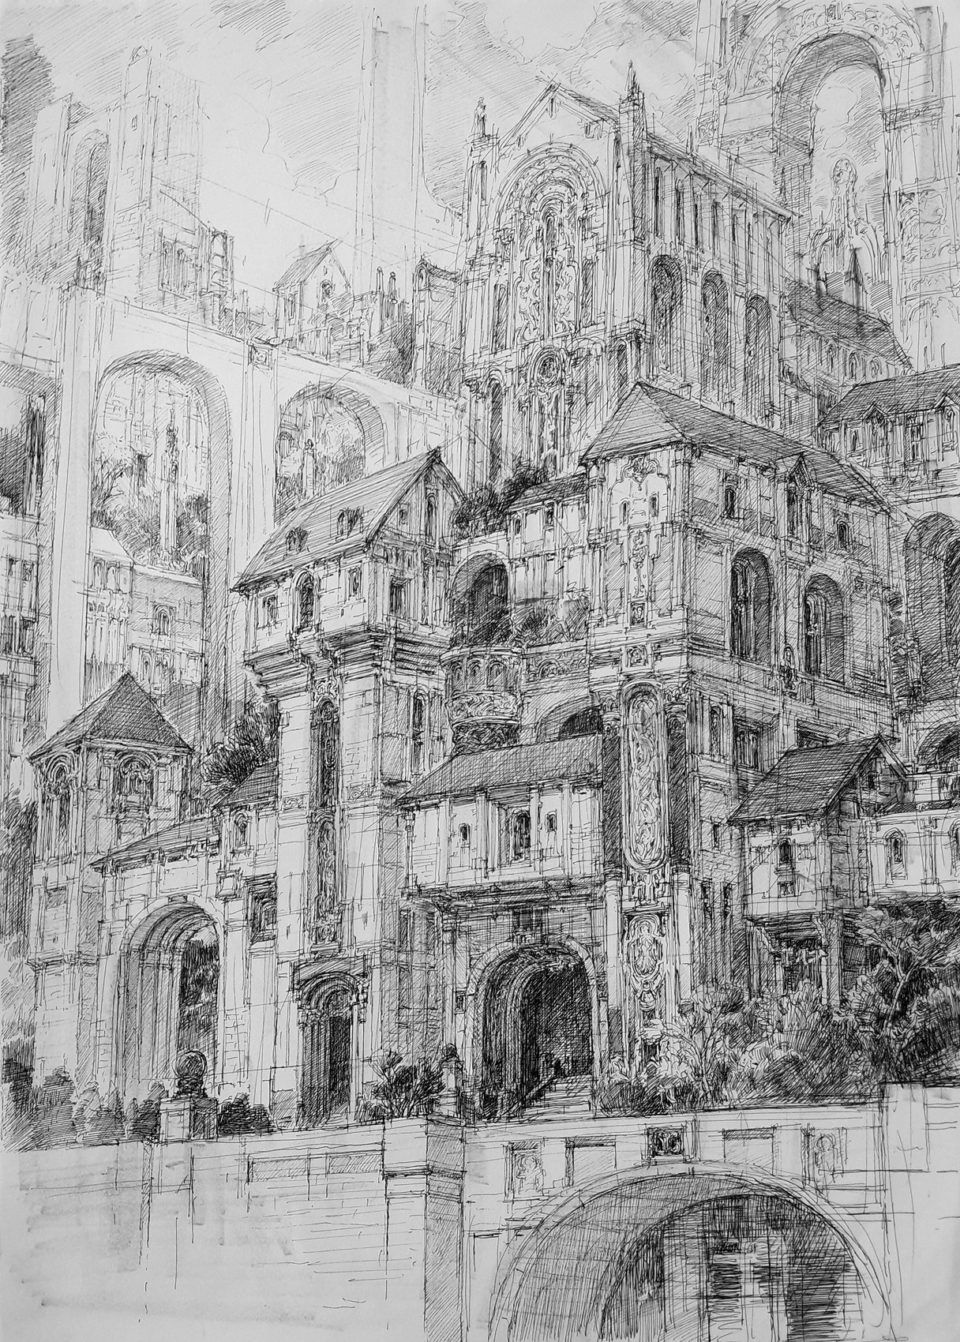 Infinite Cities Take Shape in Imagined Architectural Drawings by JaeCheol Park